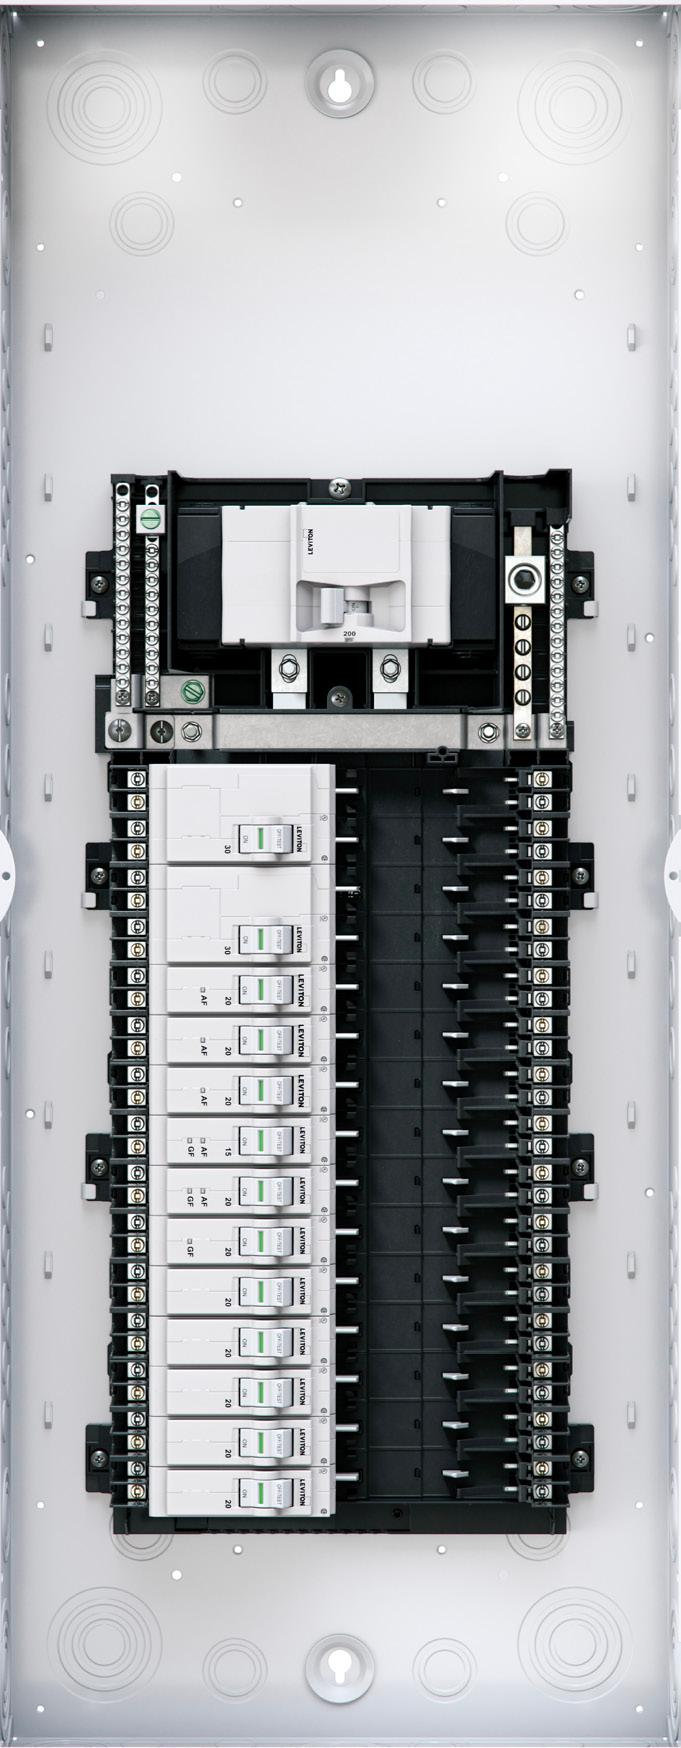 The Leviton Load Center Future Made Current Pdf 240v Wiring Diagram Photos For Help Your Working Safety Priority One As Electrical Hub Of Home Starts At